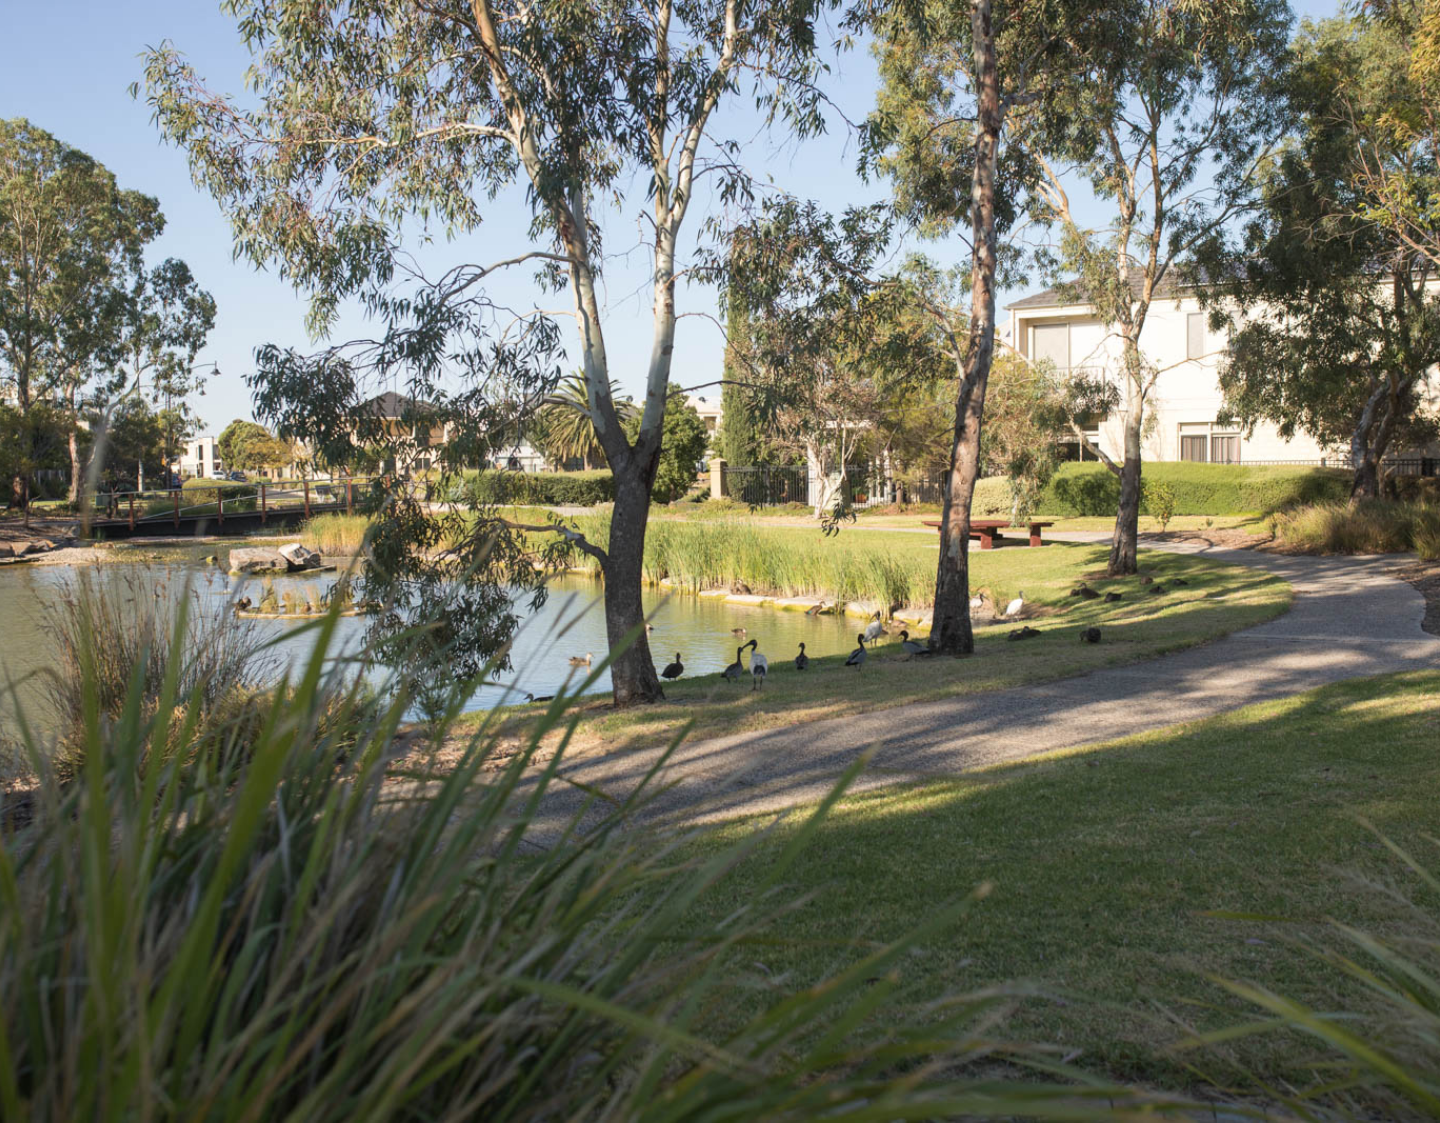 APPLY FOR A WATER PERMIT - Green Adelaide